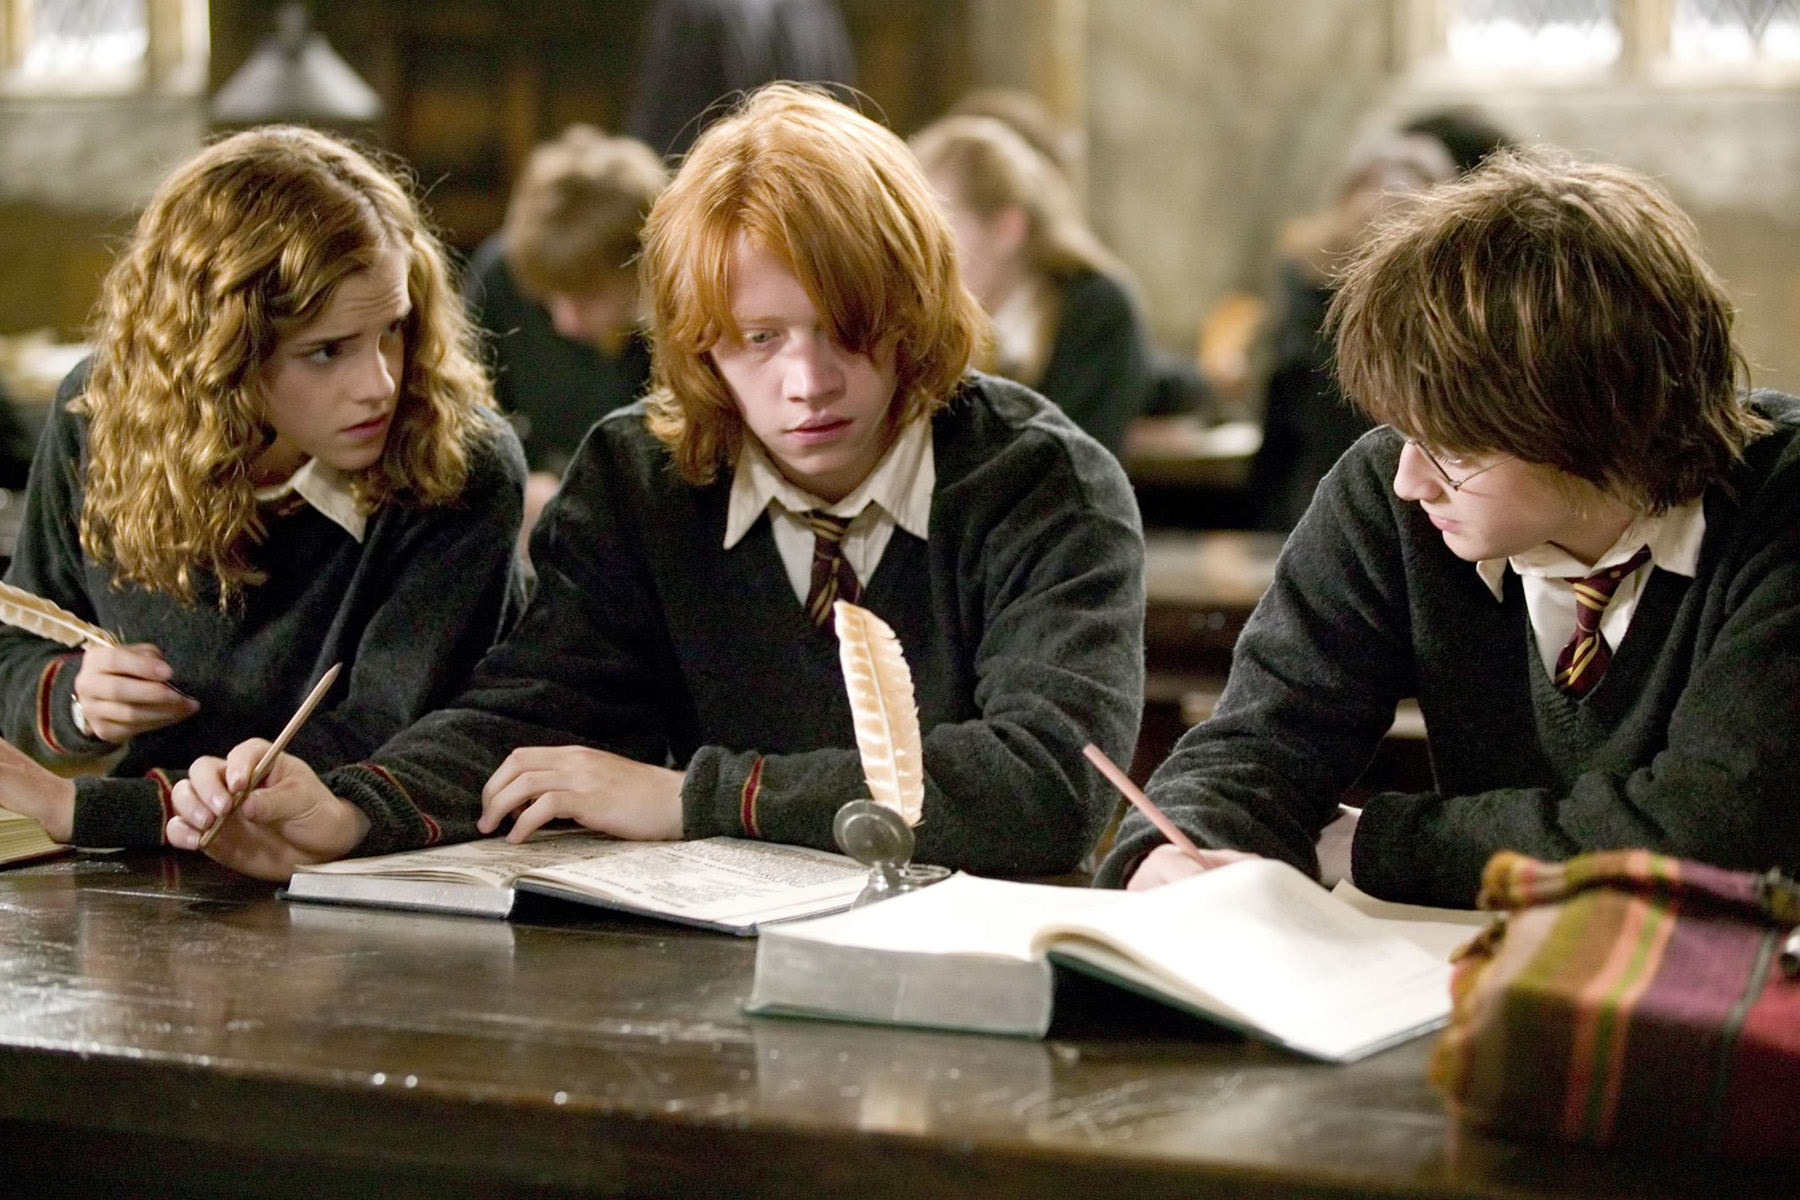 Hermione helps Ron and Harry with their homework